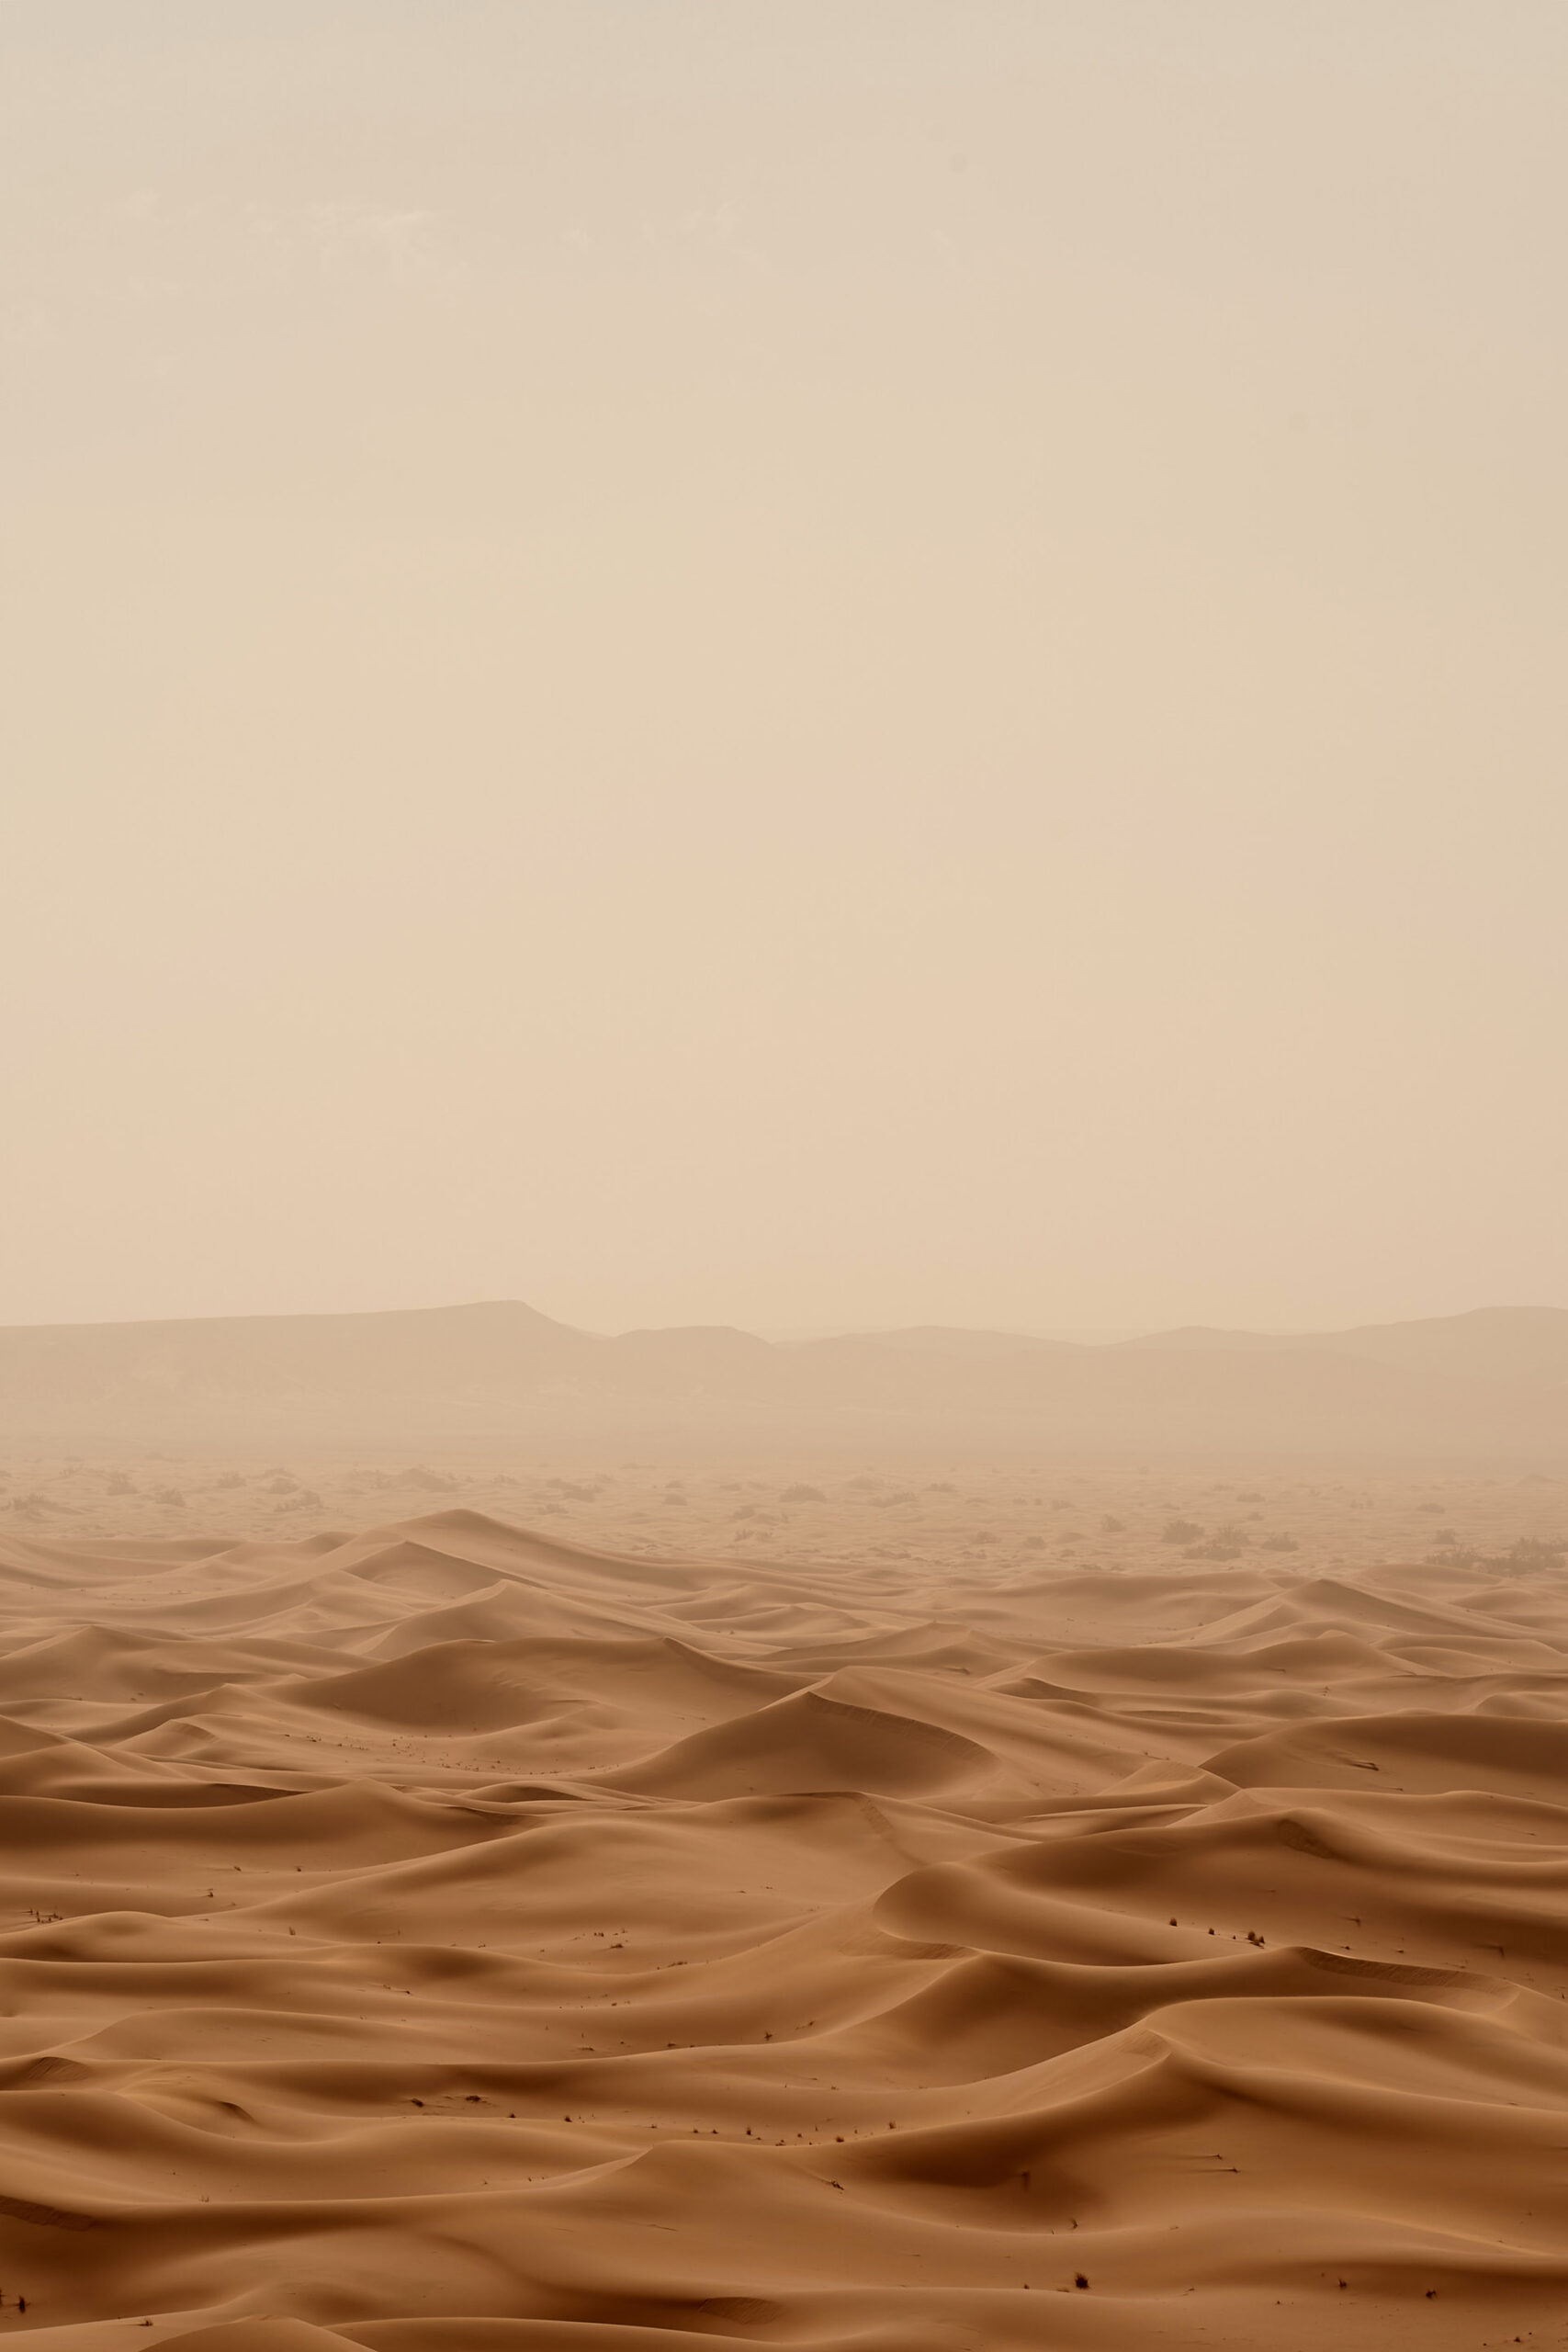 Wolfgang Hasselmann - Photo de desert from Unsplash